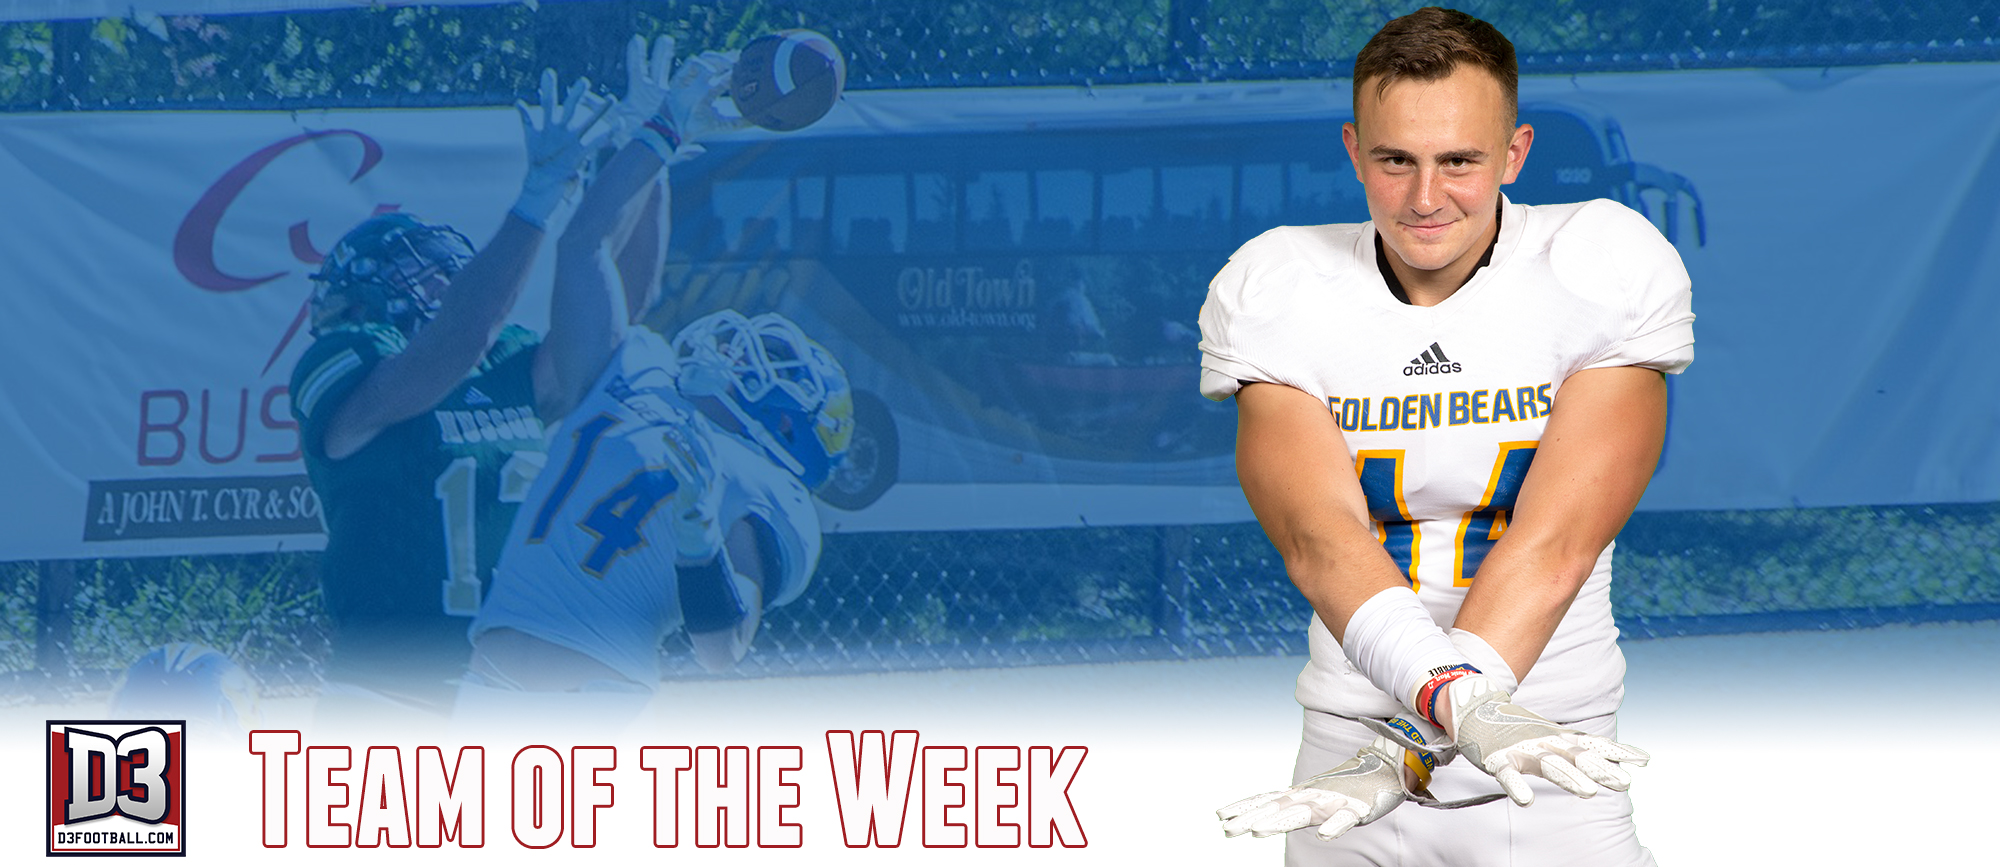 Tommy Ganley Named to D3football.com Team of the Week